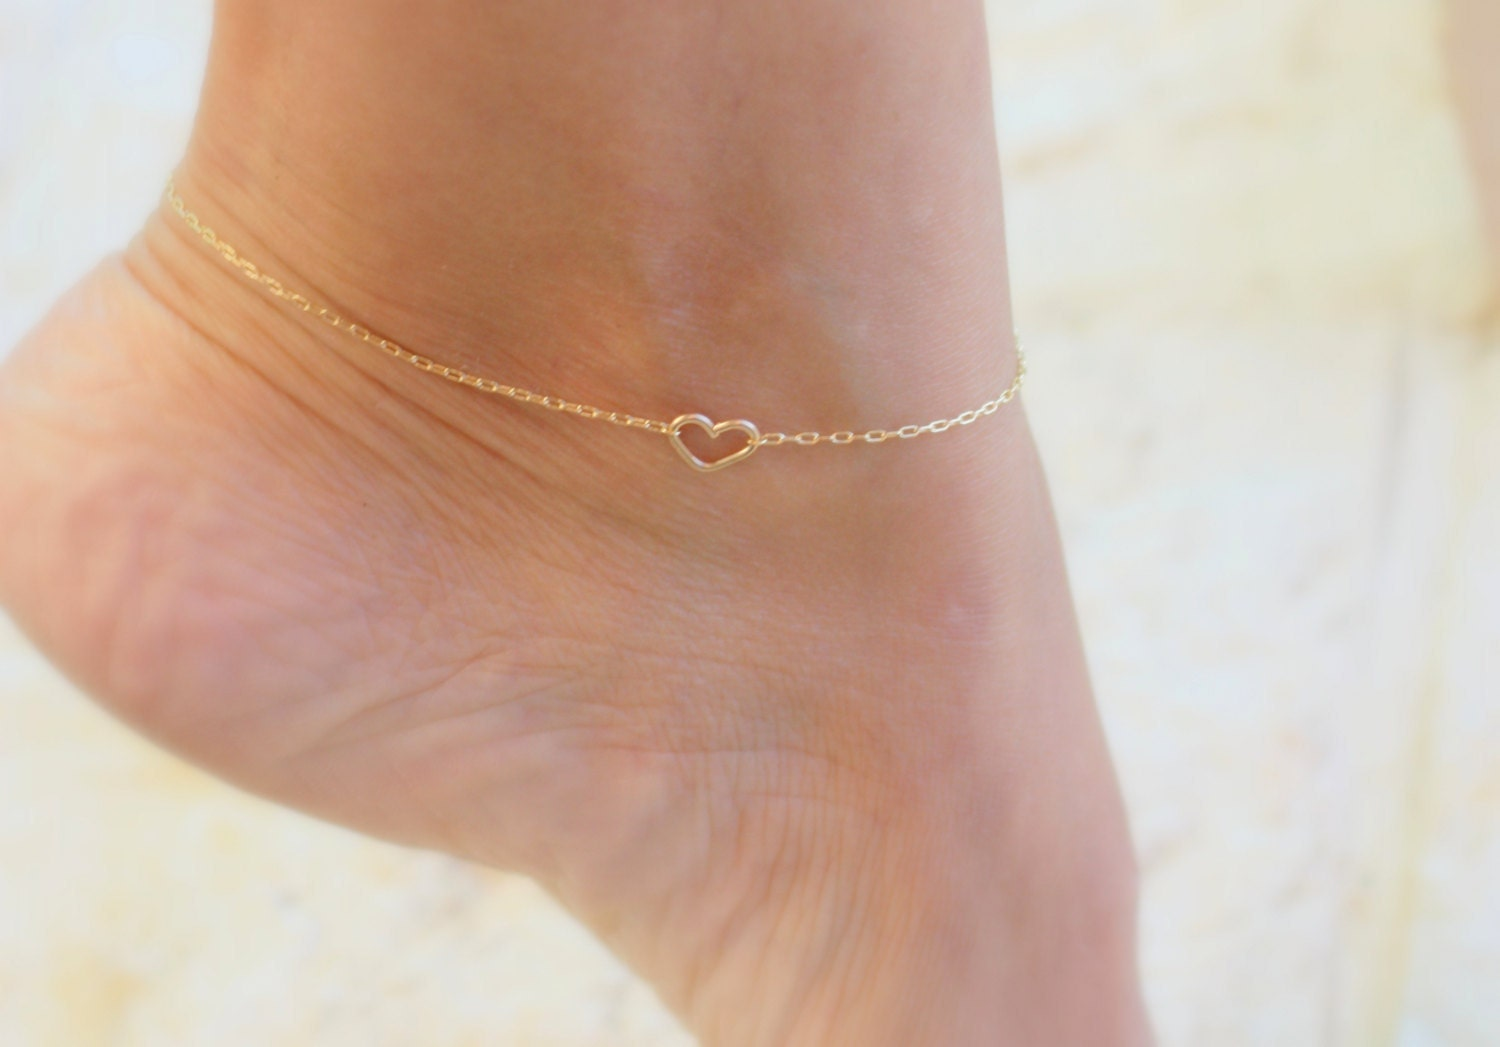 9 Attractive Heart Anklets With New Styles In Trend